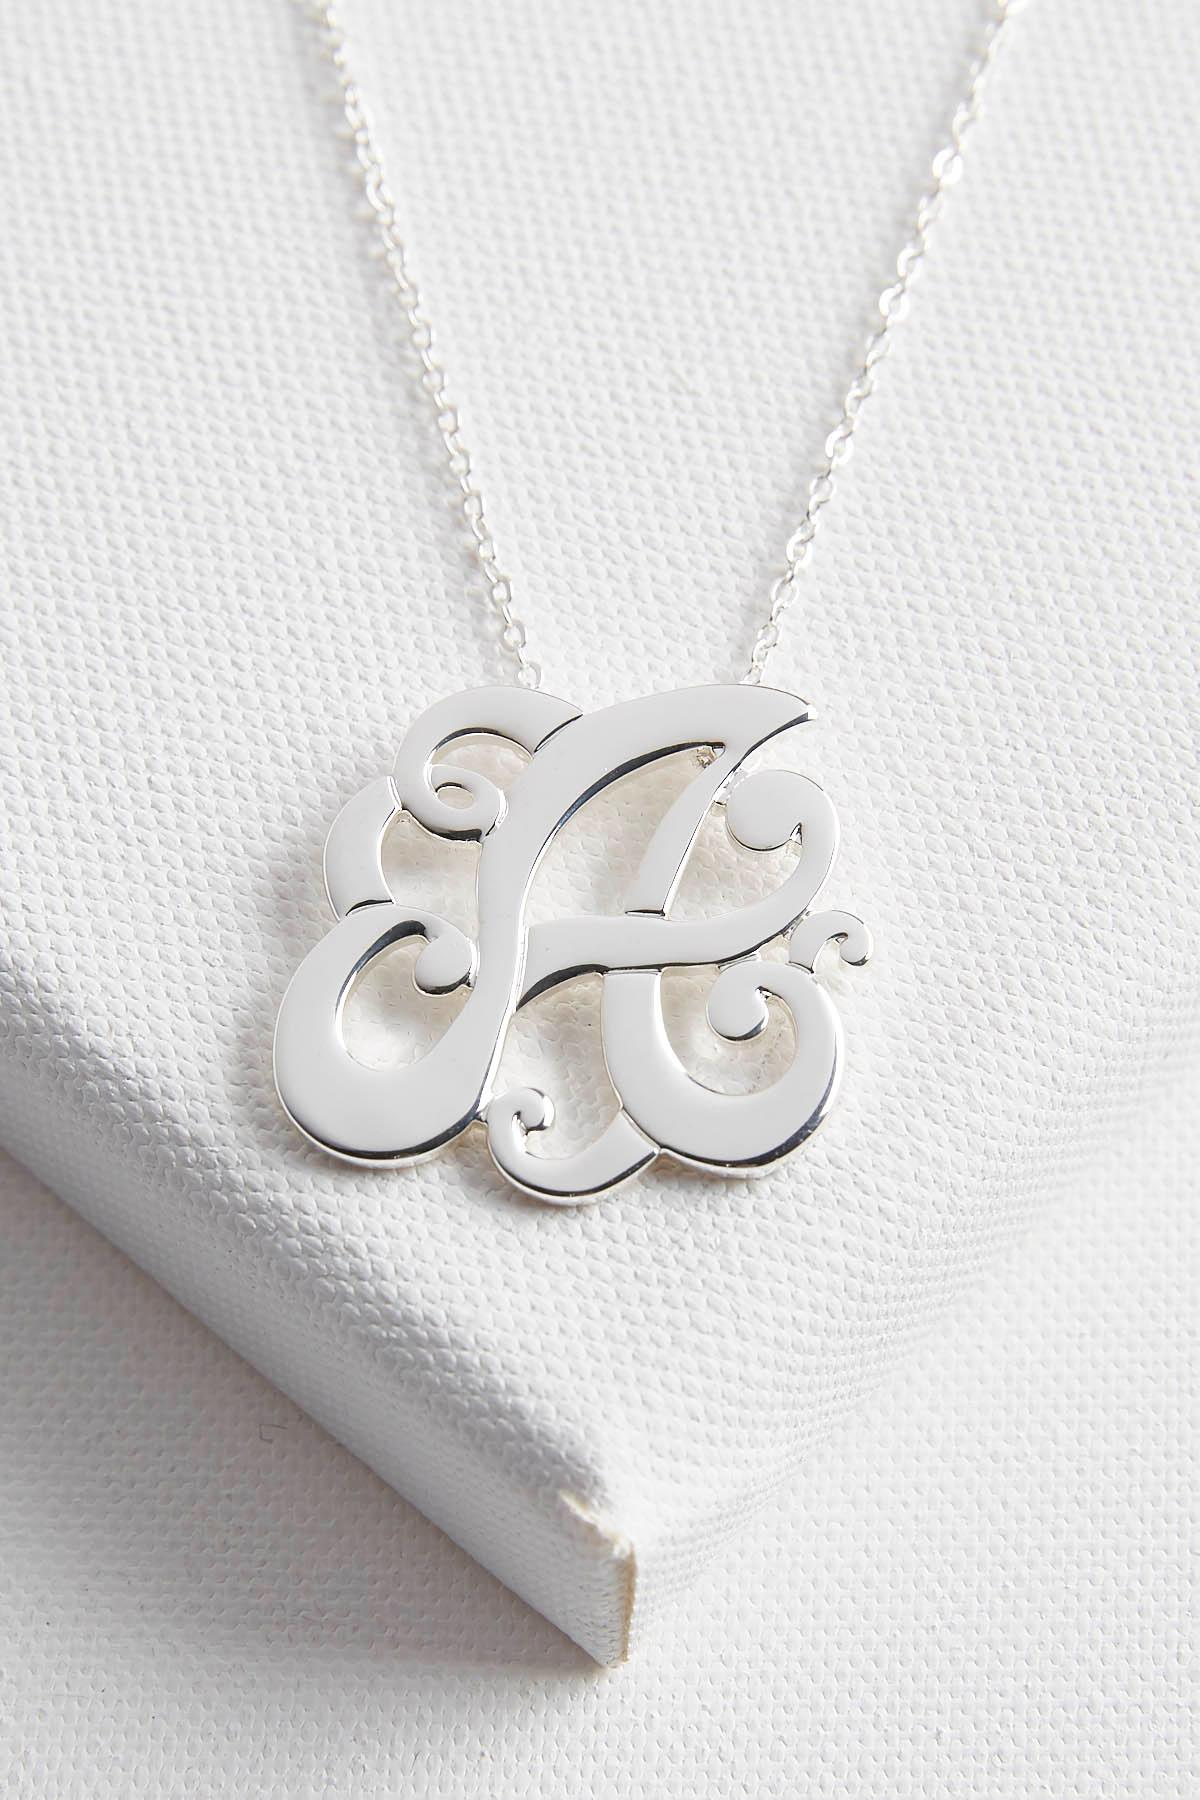 Initial Scroll Brass Pendant Necklace- A